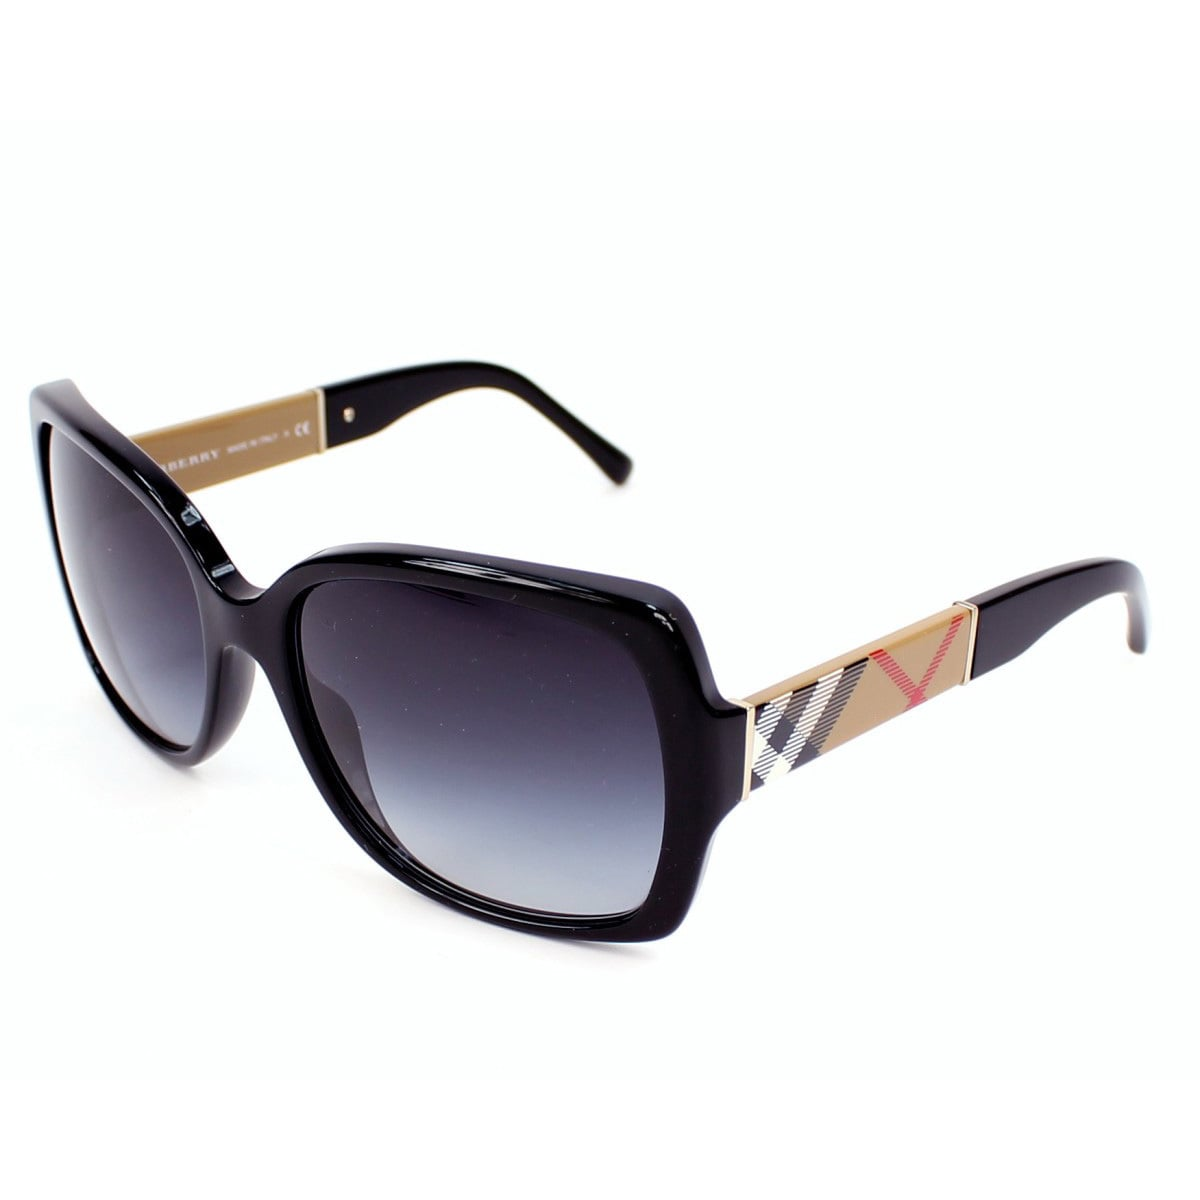 c42723e2a41 Shop Burberry Women s BE4160 34338G Black Square Sunglasses - Large ...